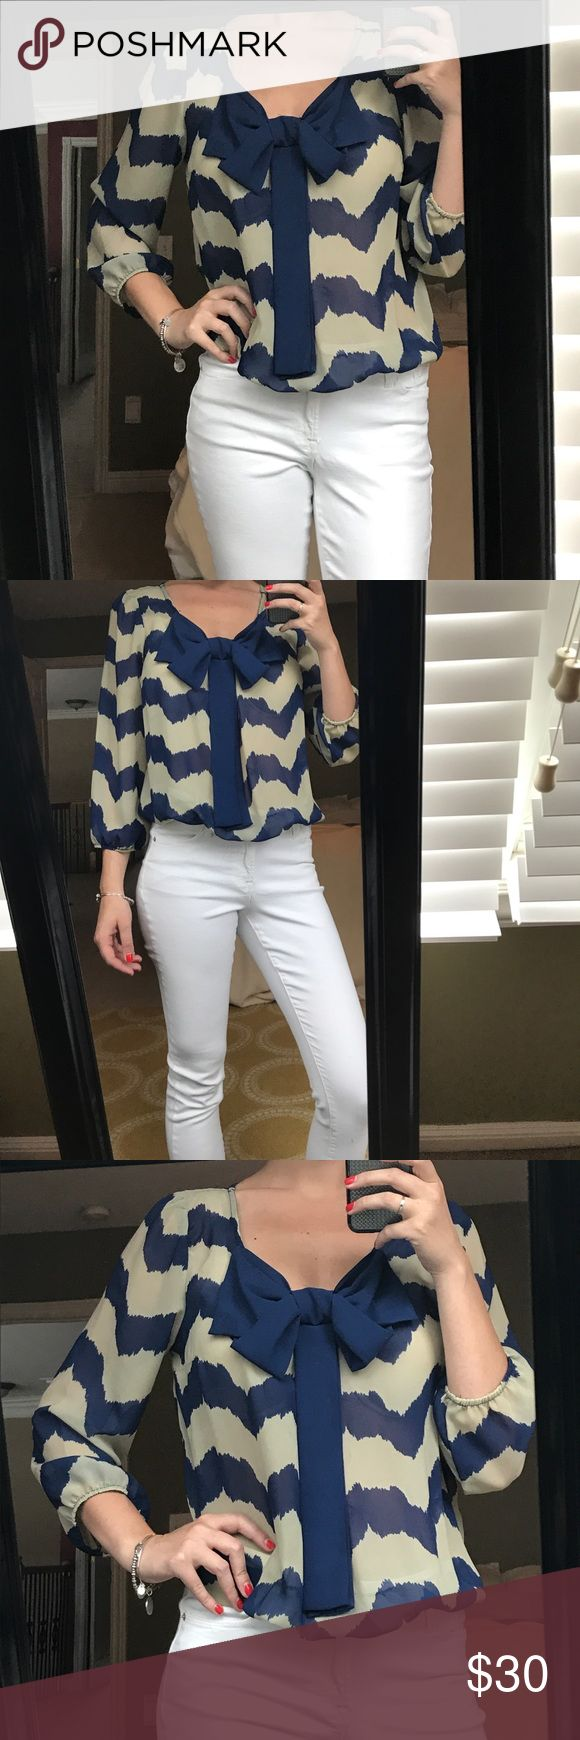 Chevron Blouse Gray and navy blue chevron blouse. Front bow. Sinched bottom. 3/4 sleeves. Rachel & Chloe Tops Blouses